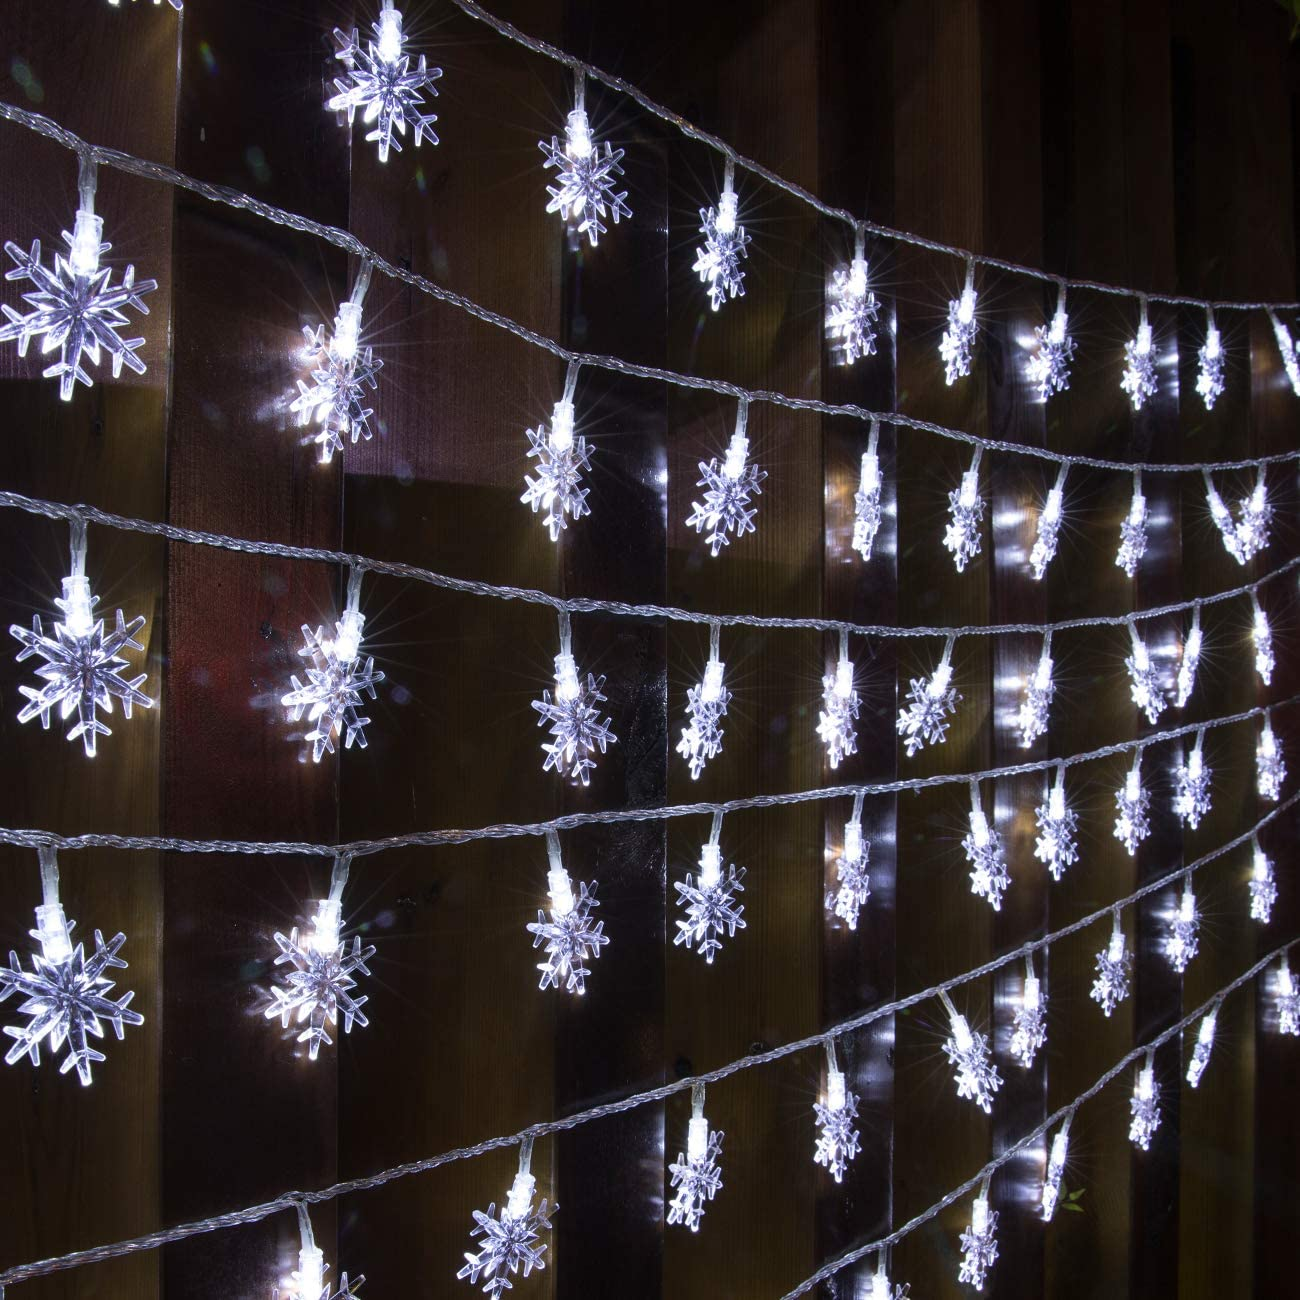 AWQ 100 LED 49 FT Christmas Lights Snowflake String Lights Plug in Fairy Lights 8 Modes Waterproof Extendable for Indoor Outdoor Wedding Birthday Christmas Tree Garden Decor (White)